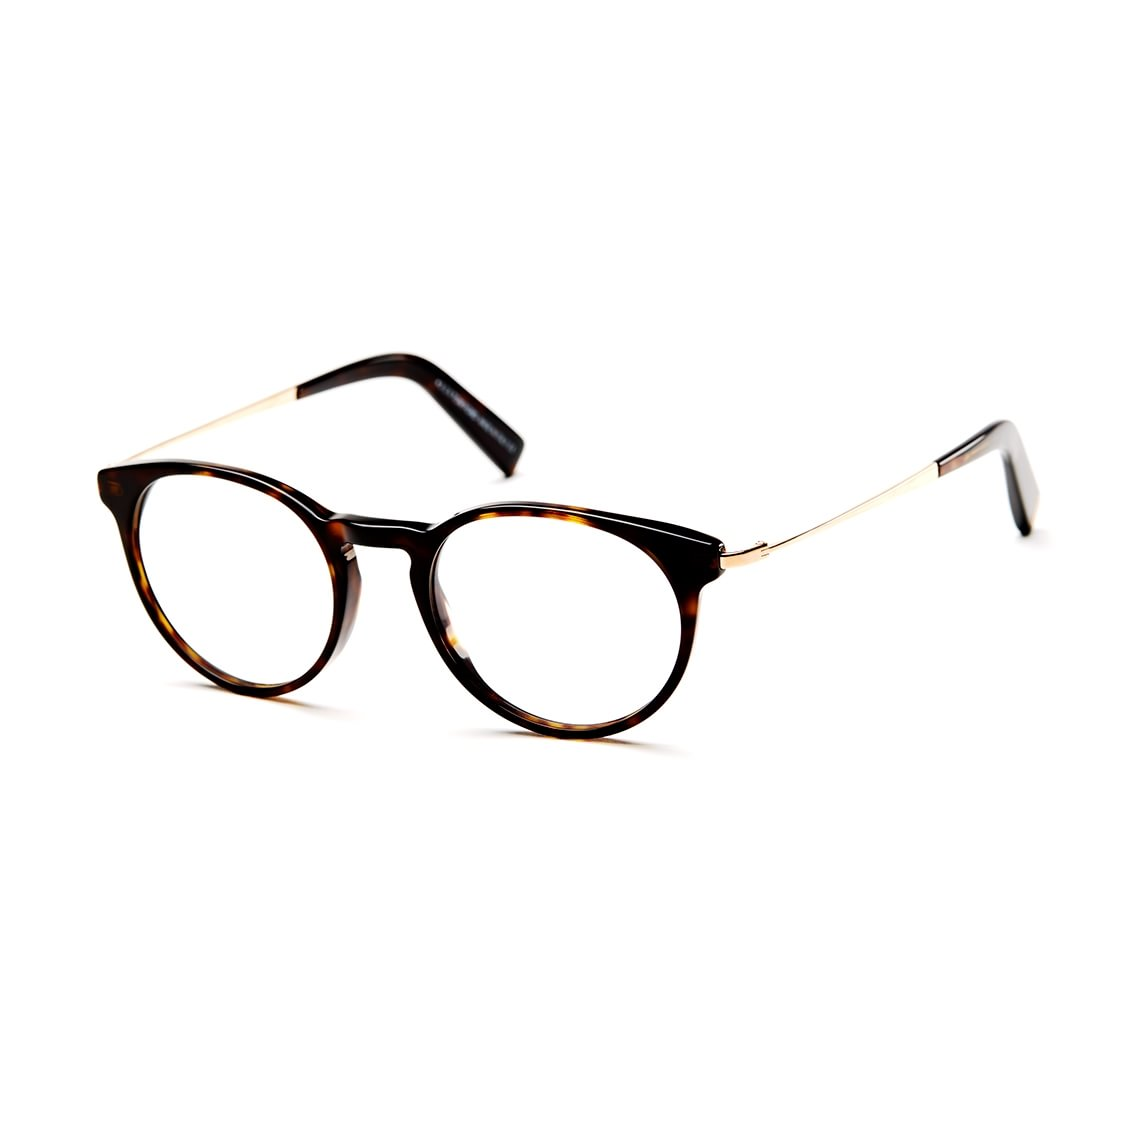 Tom Ford FT5383 052 49